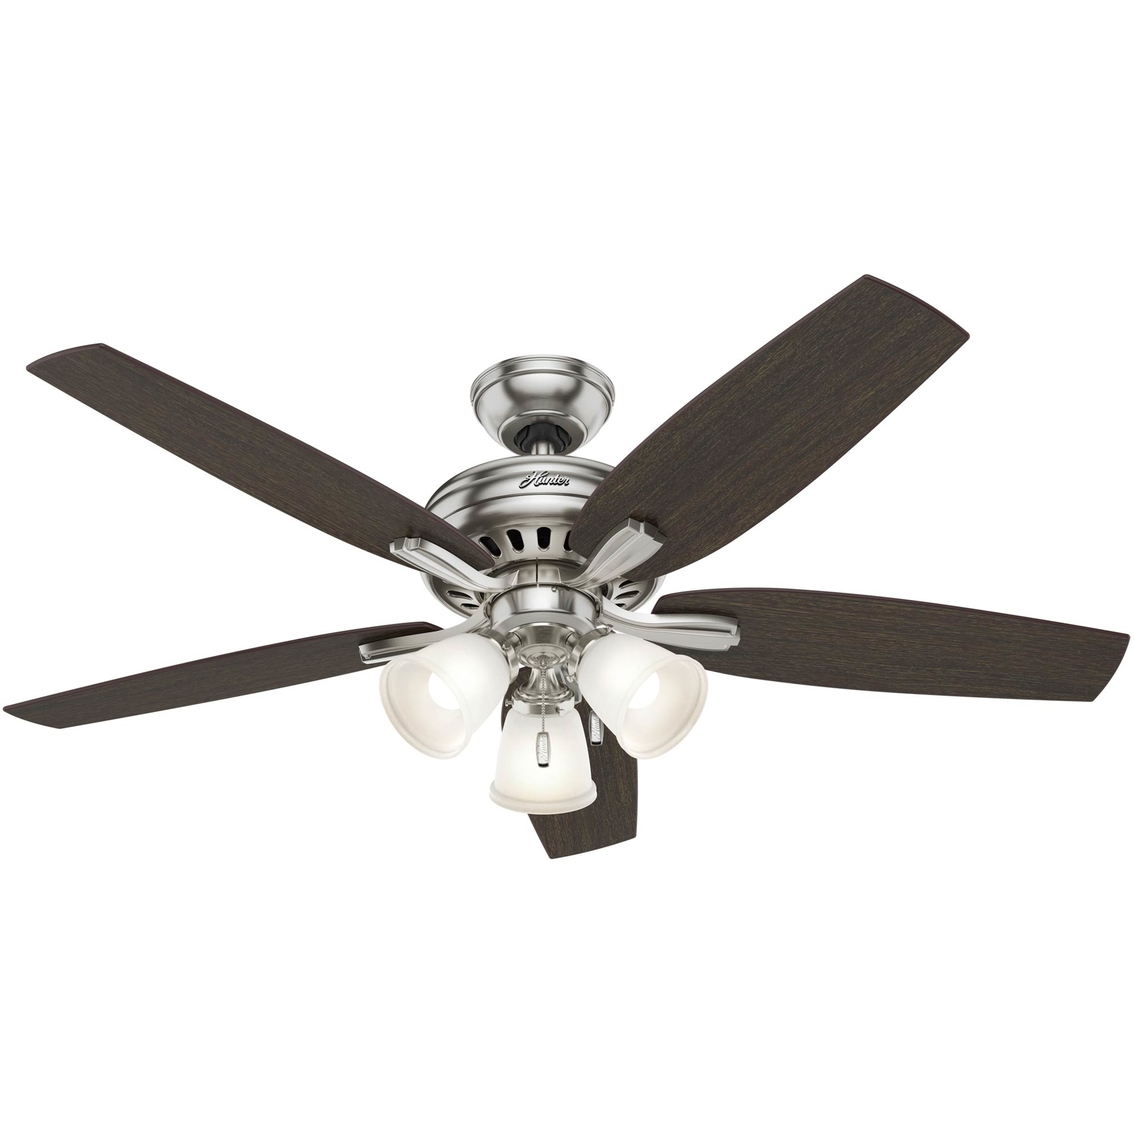 Hunter Newsome 3 Light Ceiling Fan 52 In Ceiling Fans Lights Household Shop The Exchange